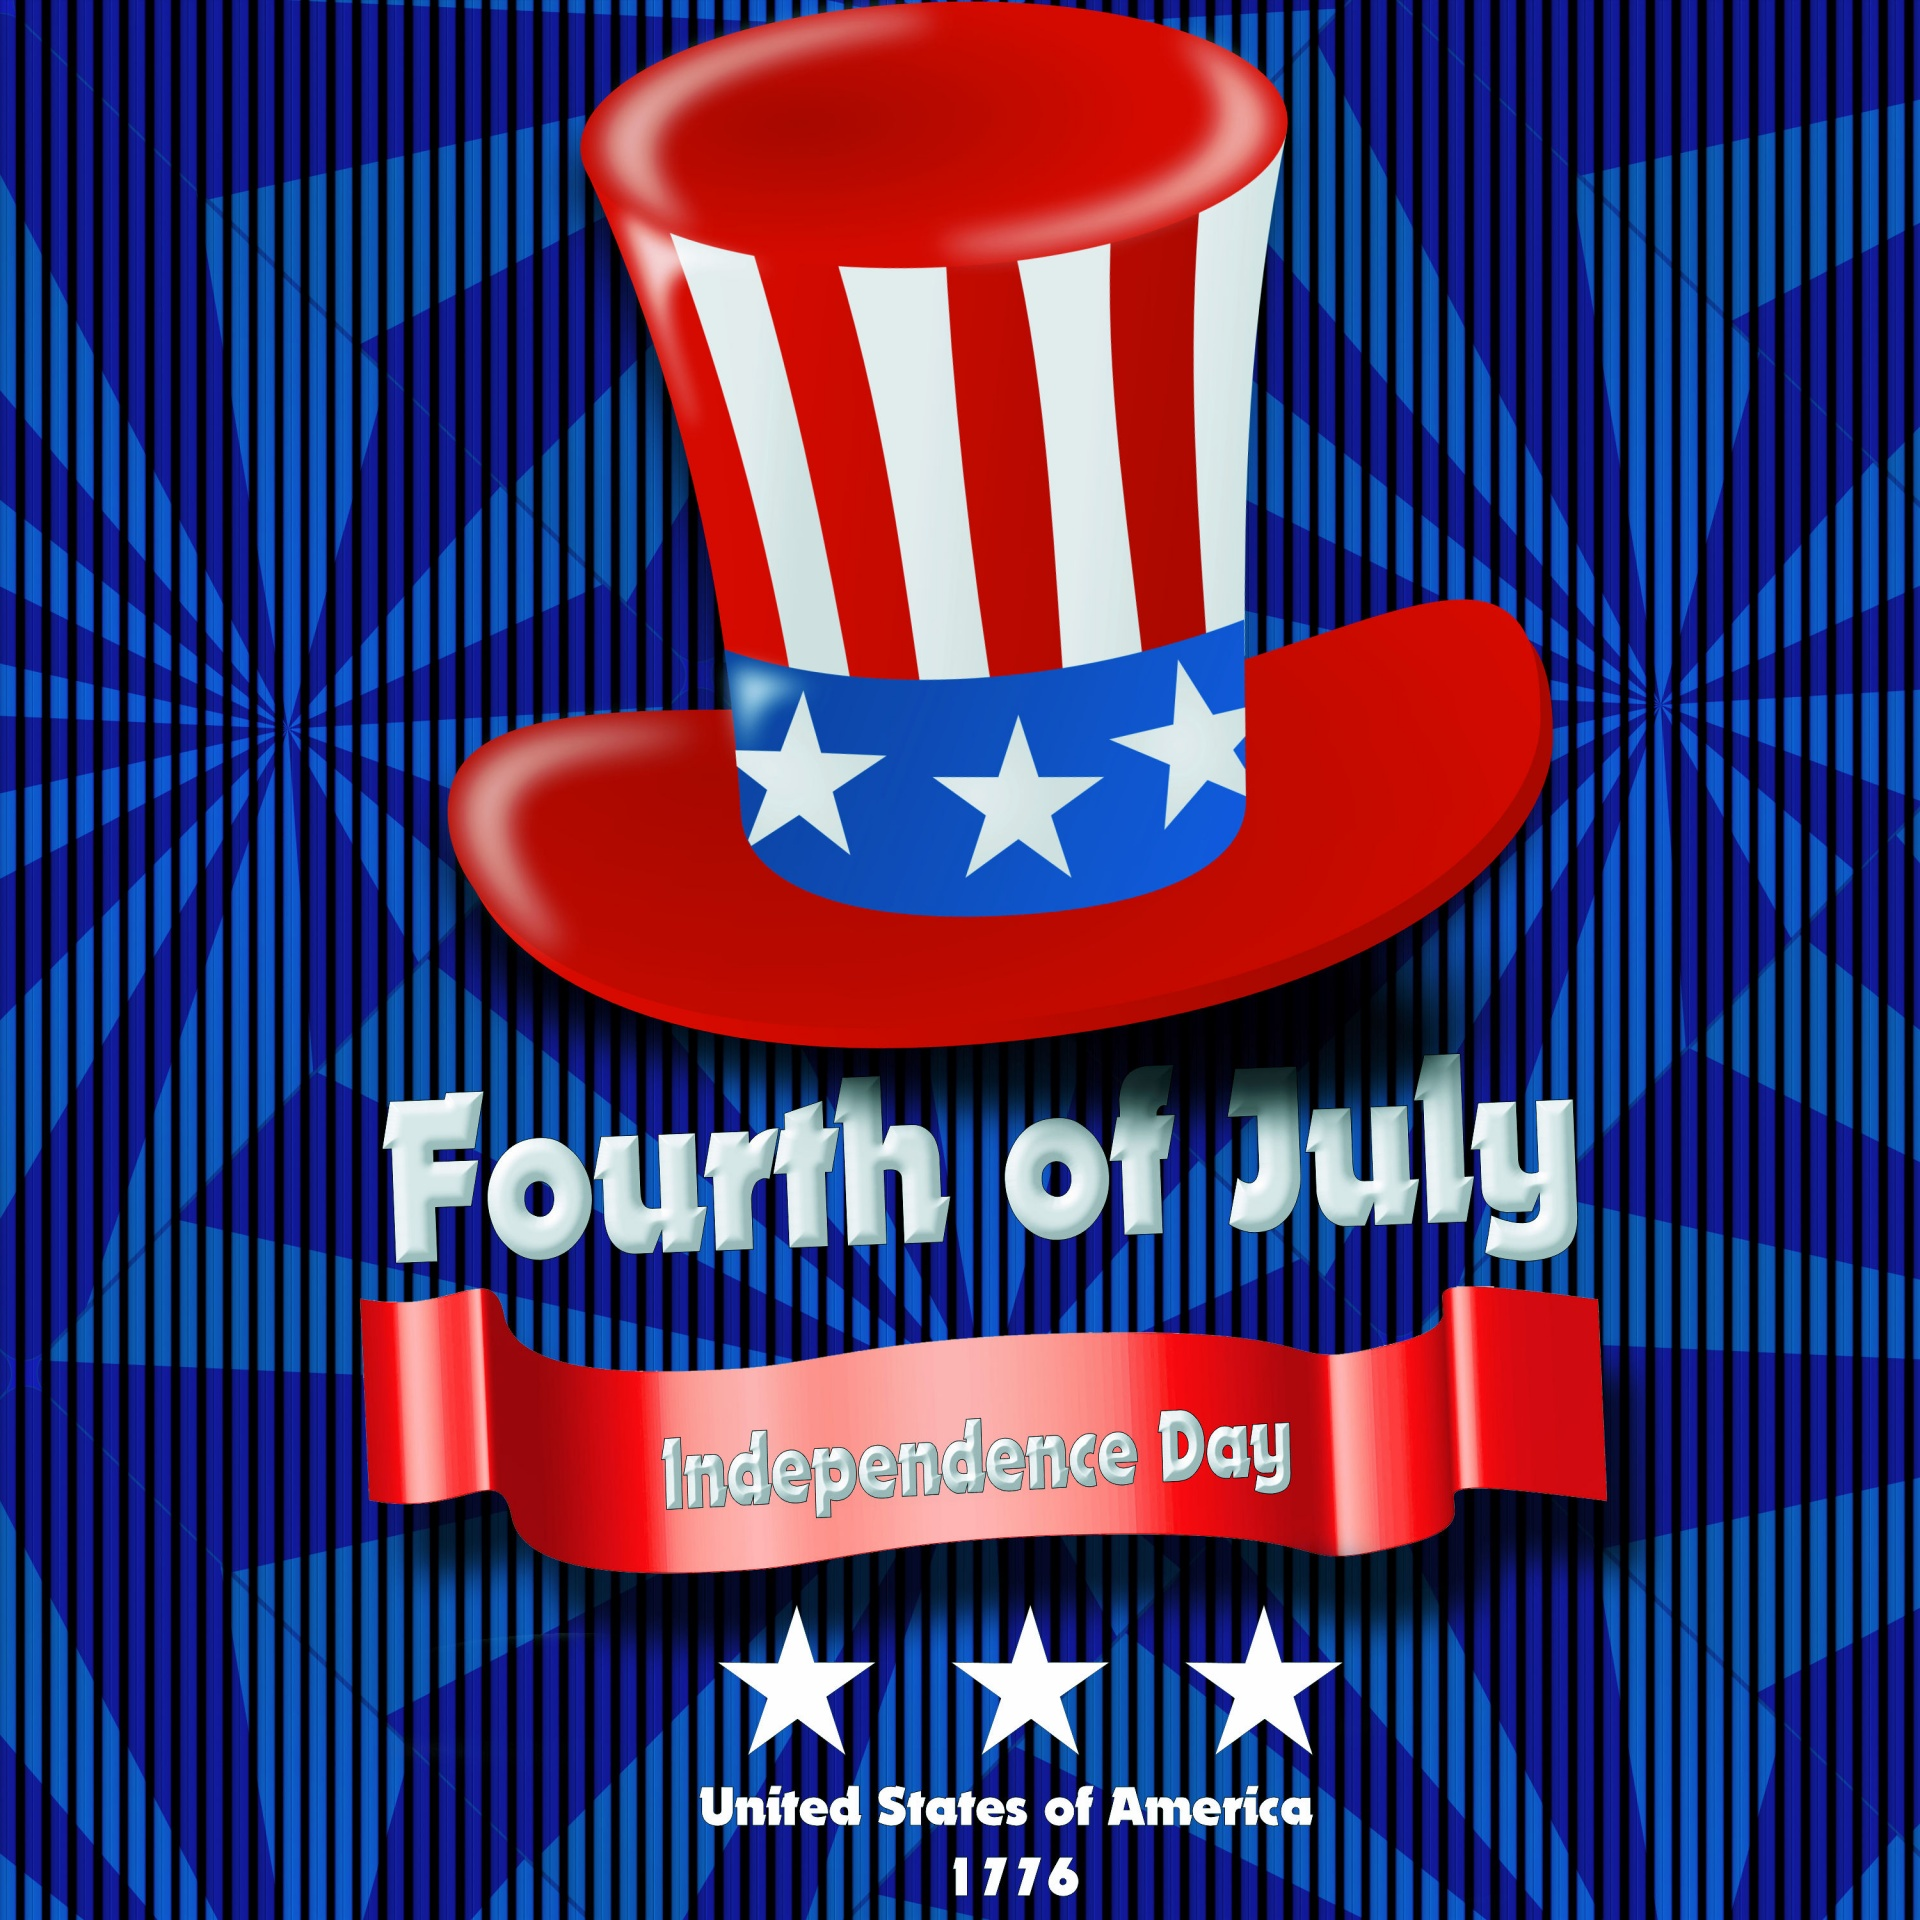 4th of July, Independence Day